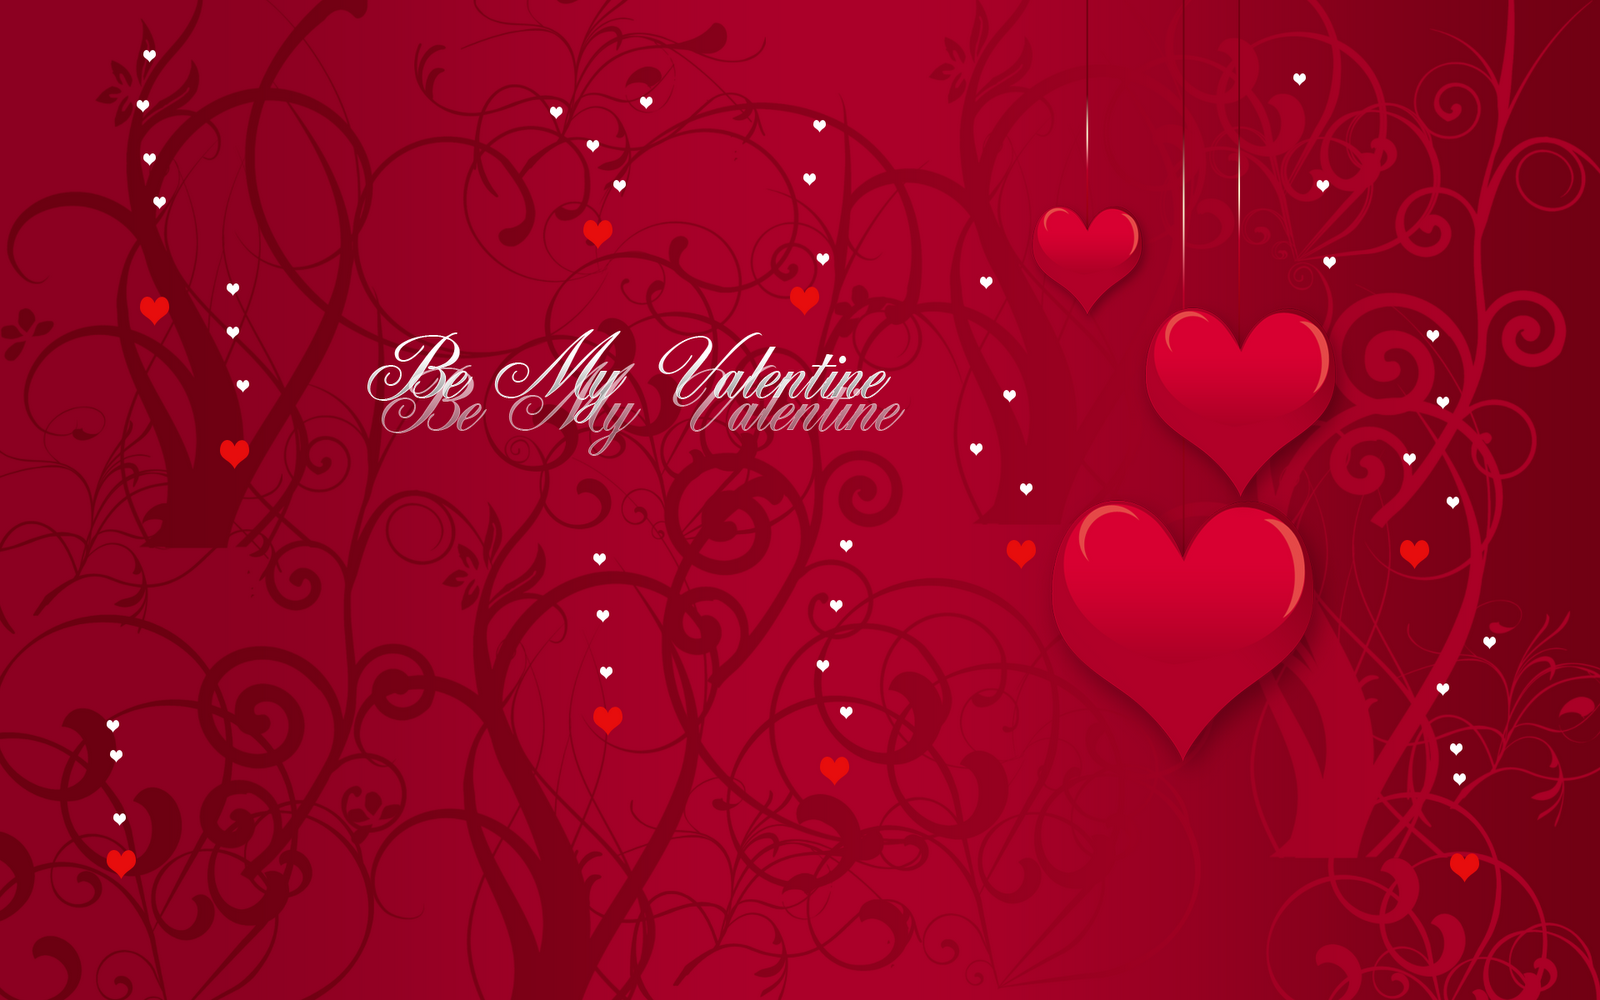 Love Wallpapers Valentine Day : Valentine s Day - Love ?HD Wallpapers HD Wallpapers ,Backgrounds ,Photos ,Pictures, Image ,Pc